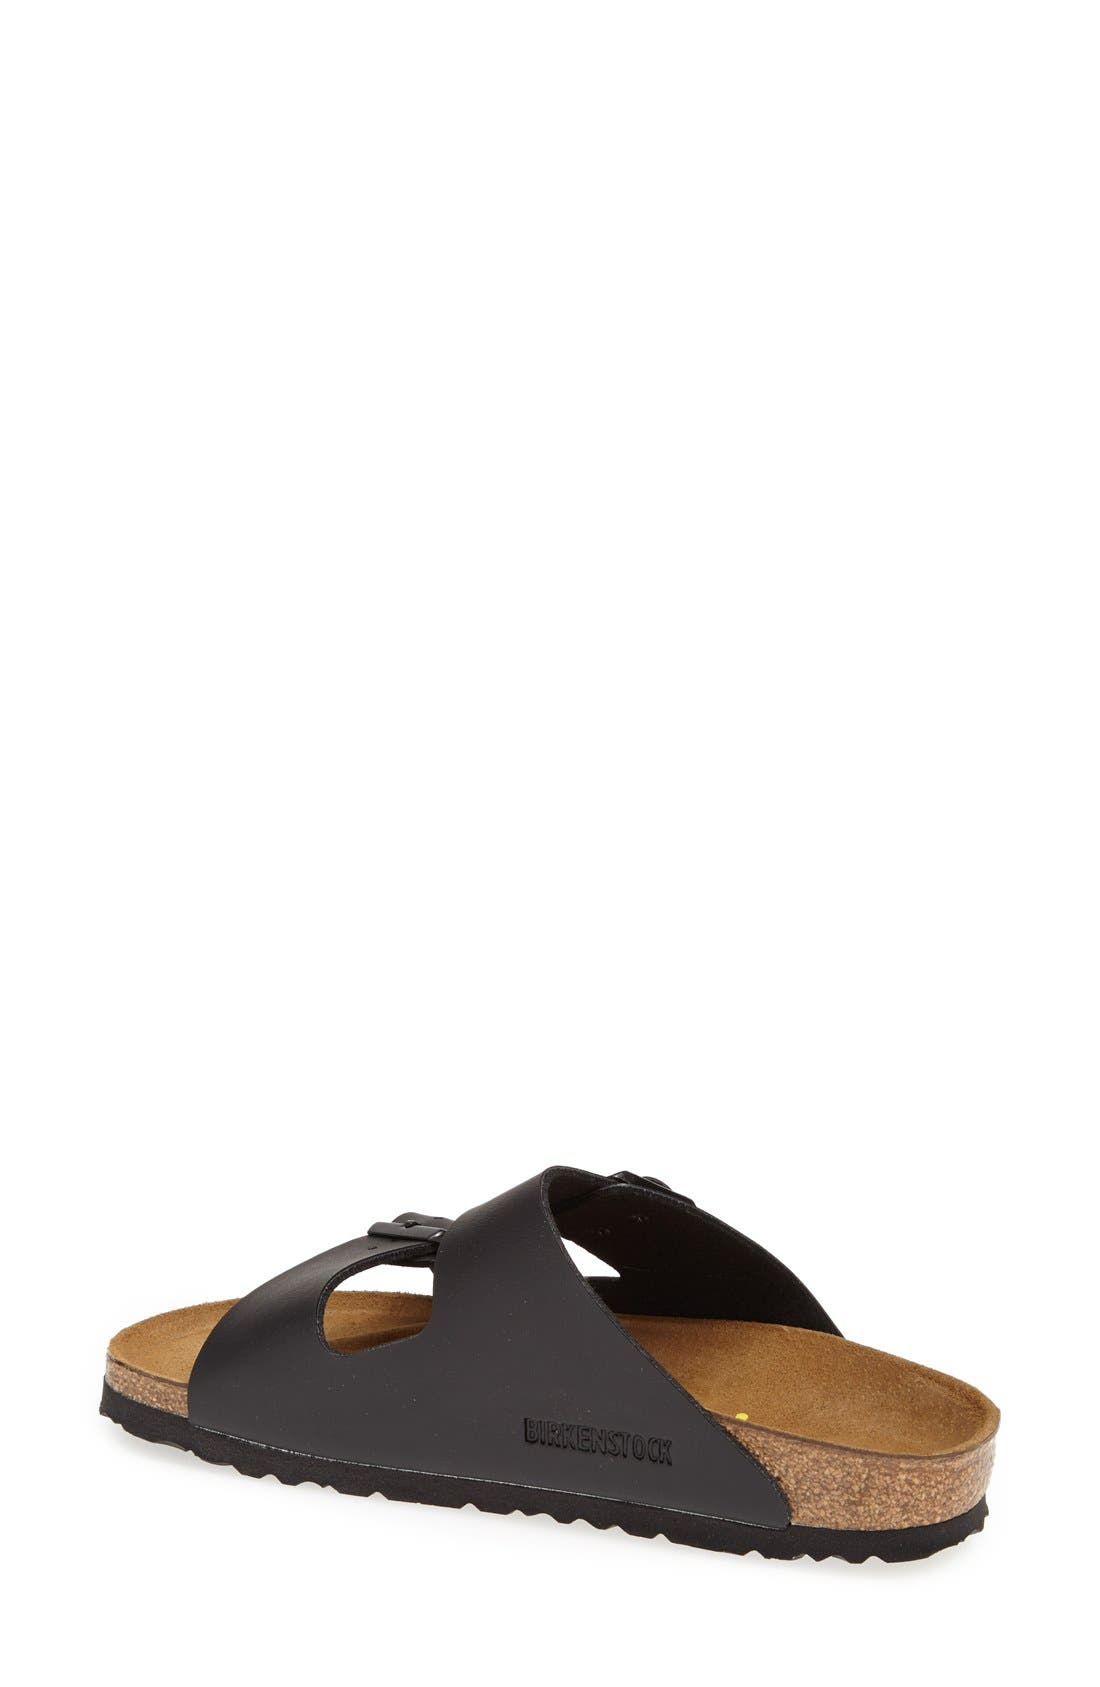 Papillio by Birkenstock 'Arizona' Birko-Flor Sandal,                             Alternate thumbnail 22, color,